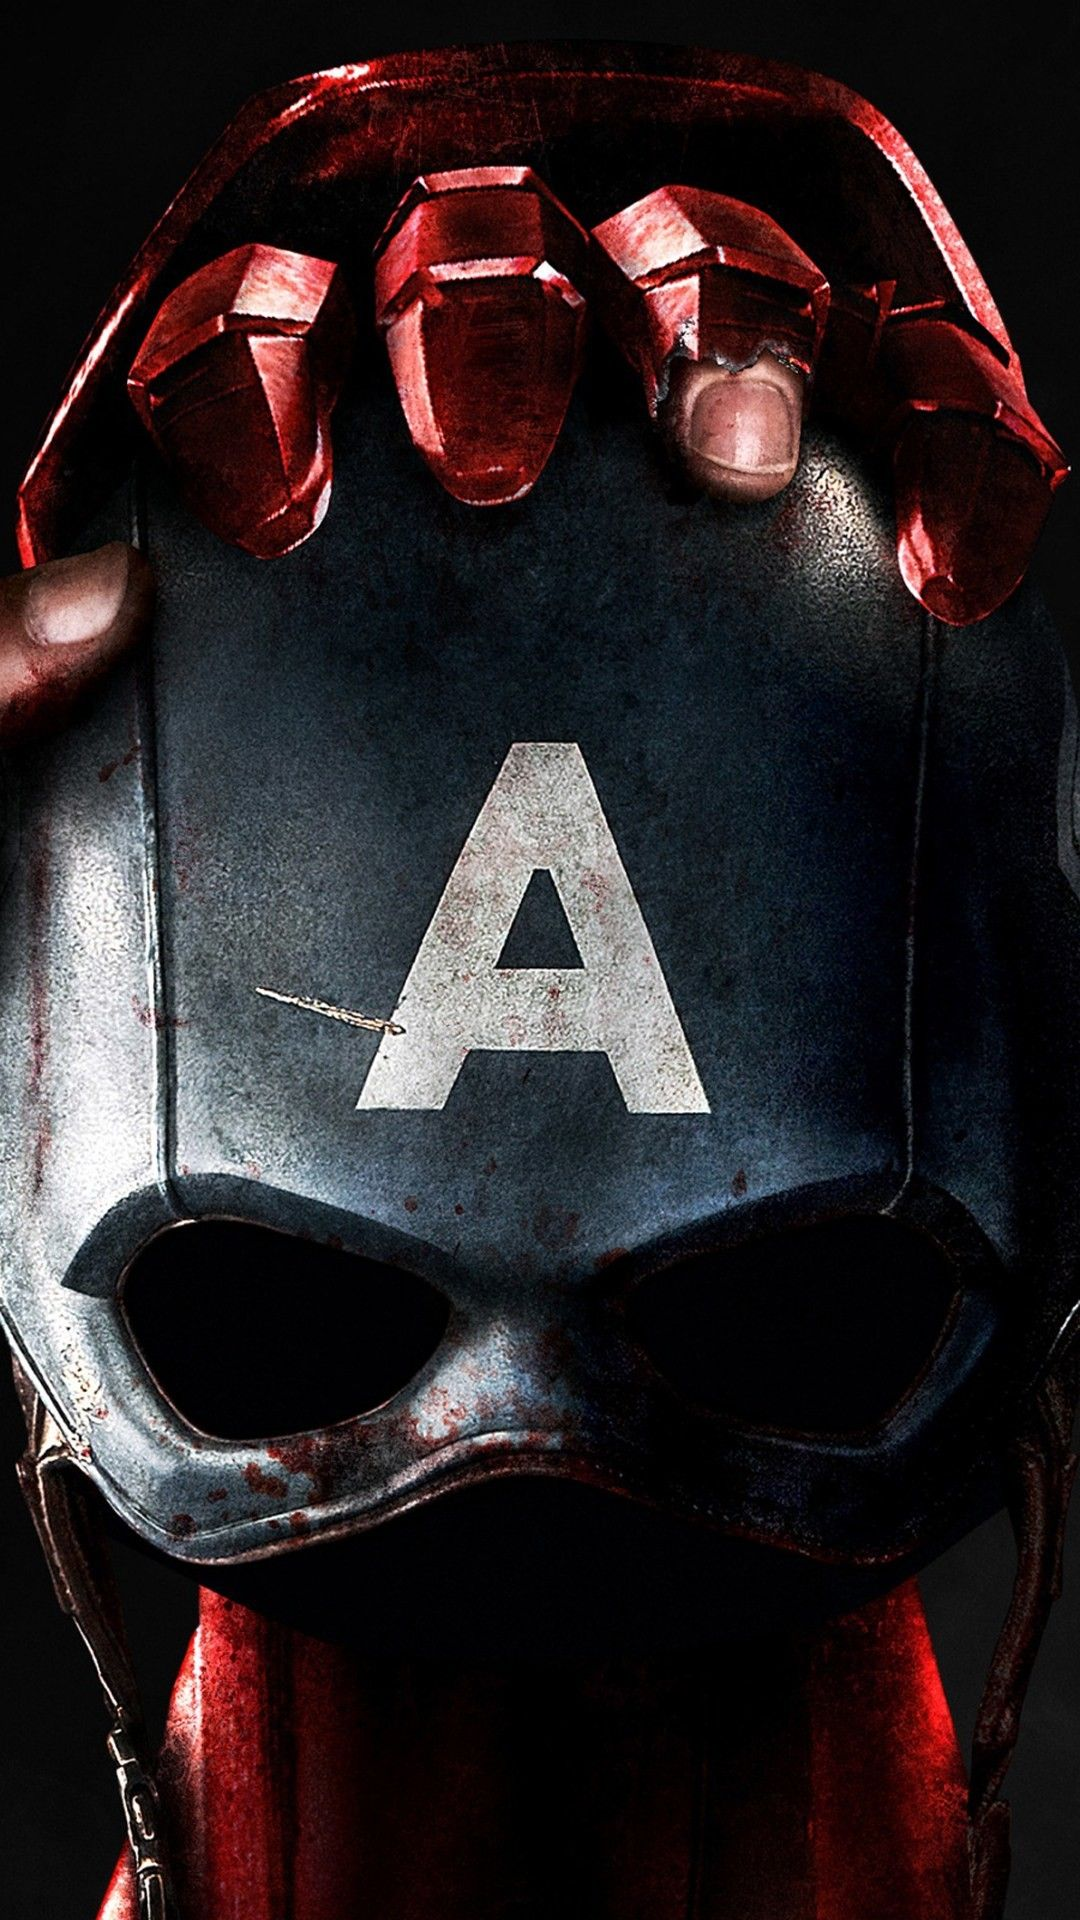 1080x1920 Captain America Civil War Hd Wallpapers For Iphone Apple Lives Captain America Shield Wallpaper Captain America Wallpaper Hd Wallpaper Iphone